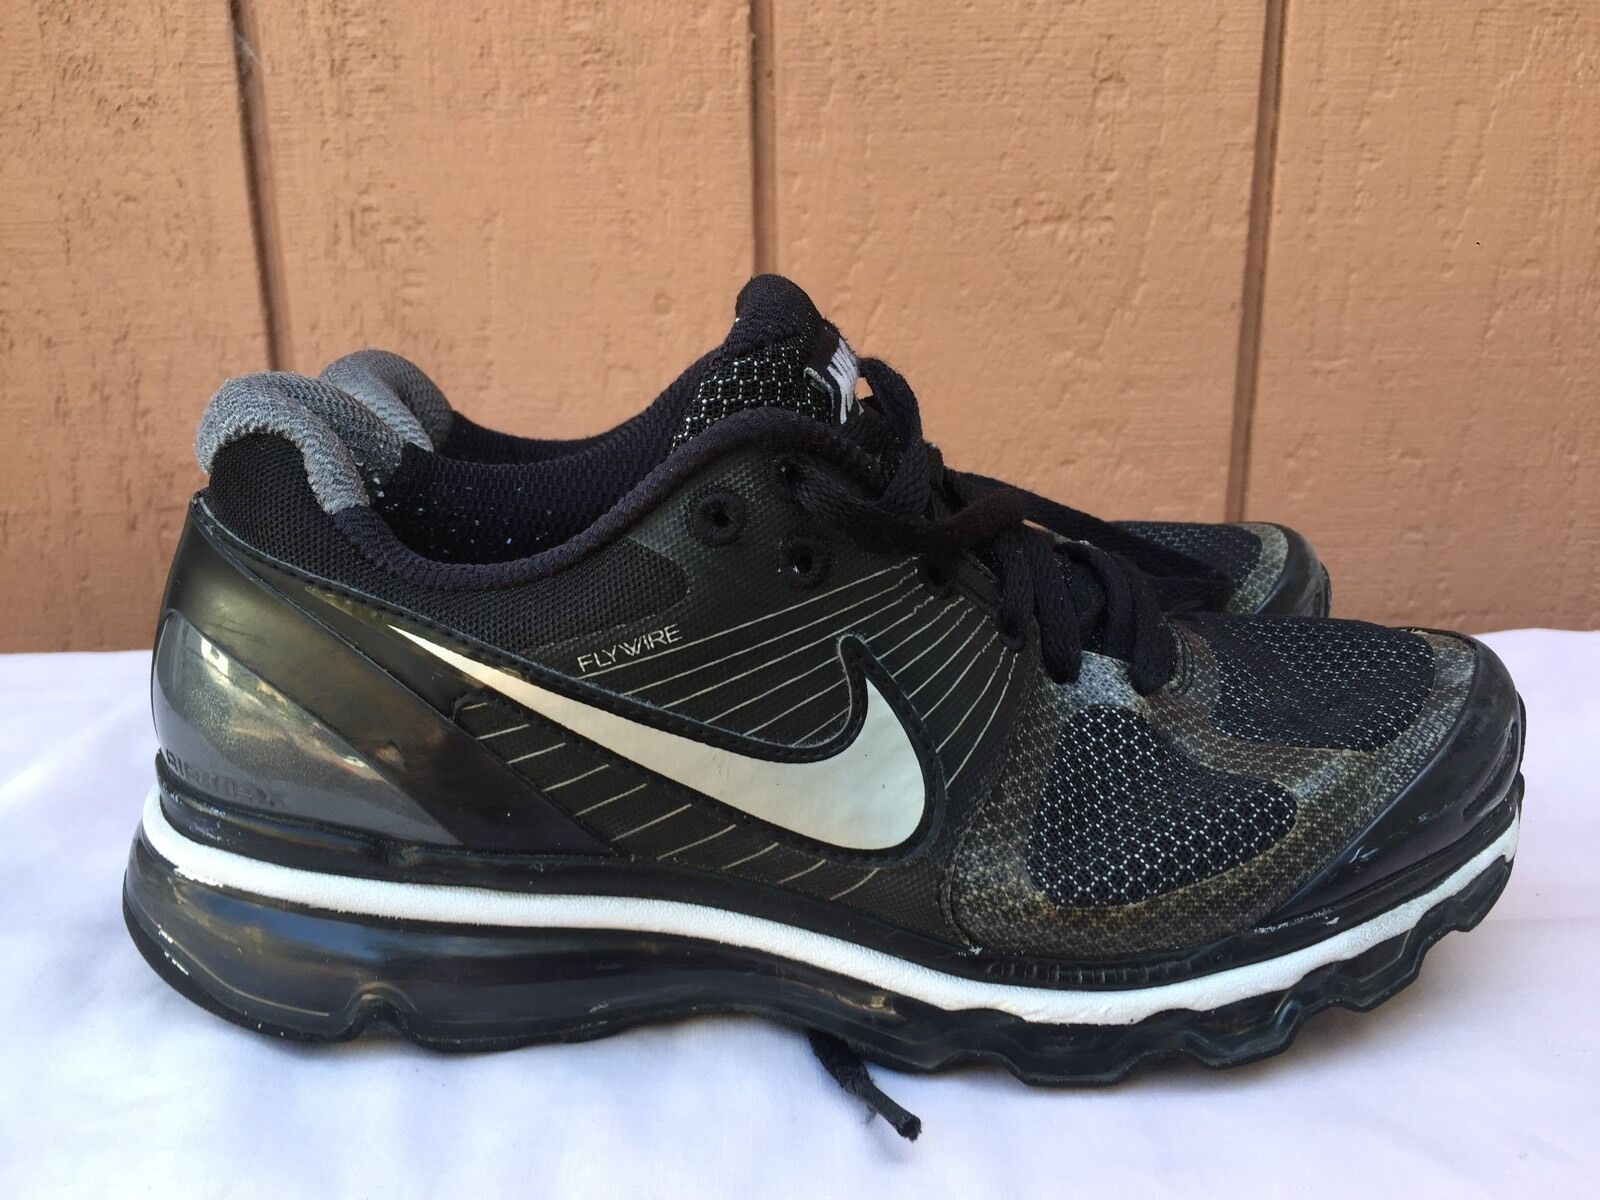 EUC Womens Nike Air Max 360 Running Shoes Black Gray 386374 004 US 8.5  New shoes for men and women, limited time discount